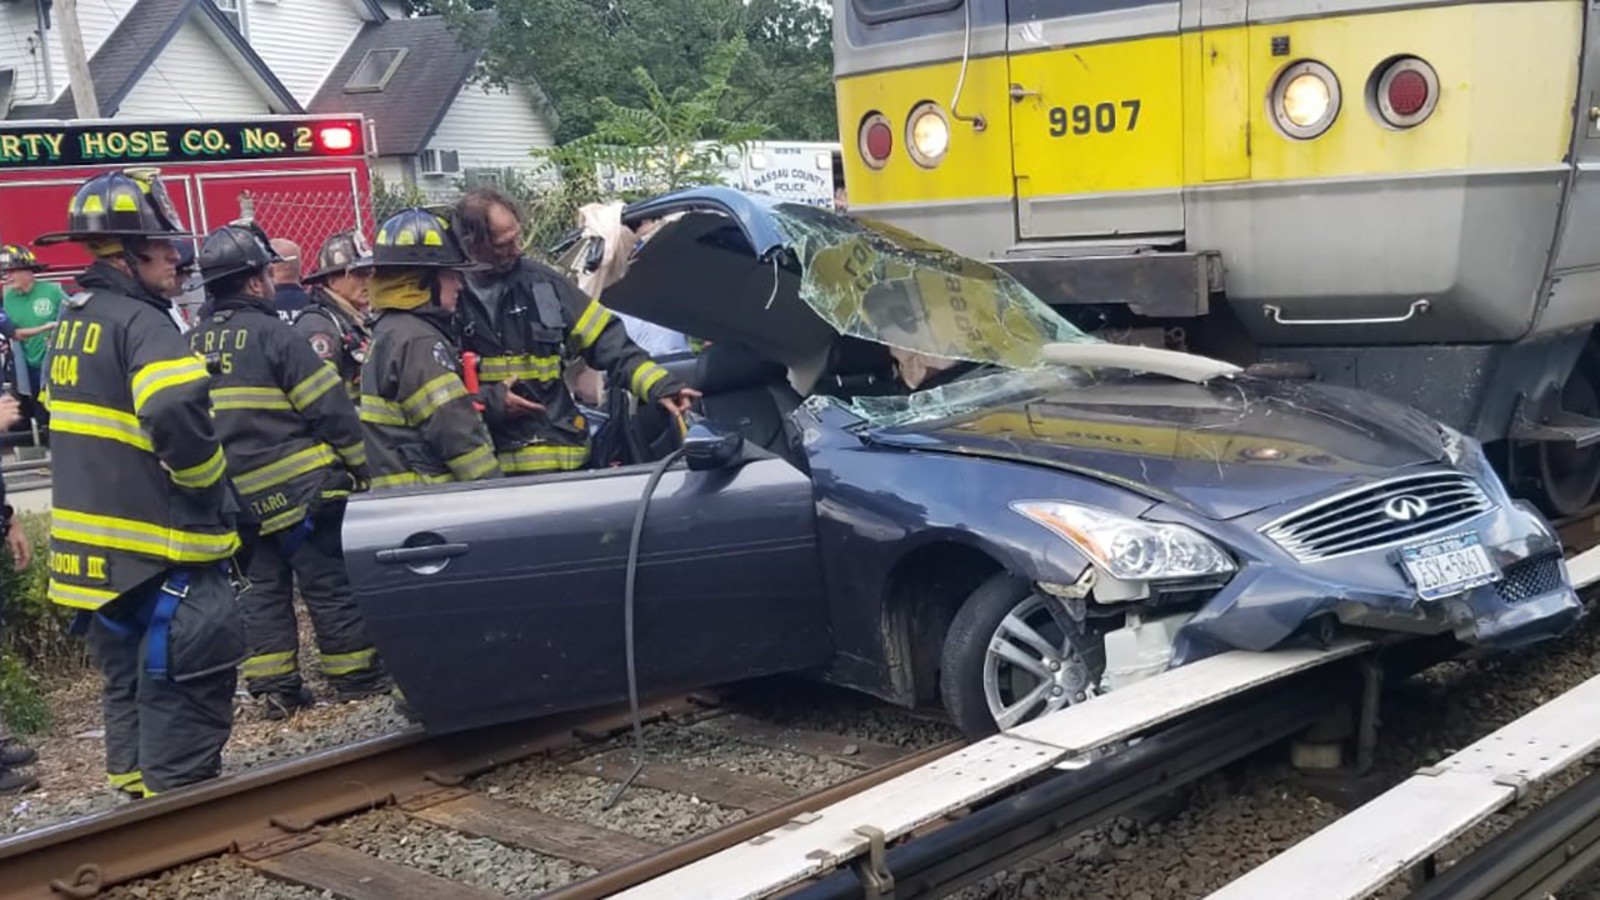 LIRR Long Beach branch service suspended after train hits car on tracks